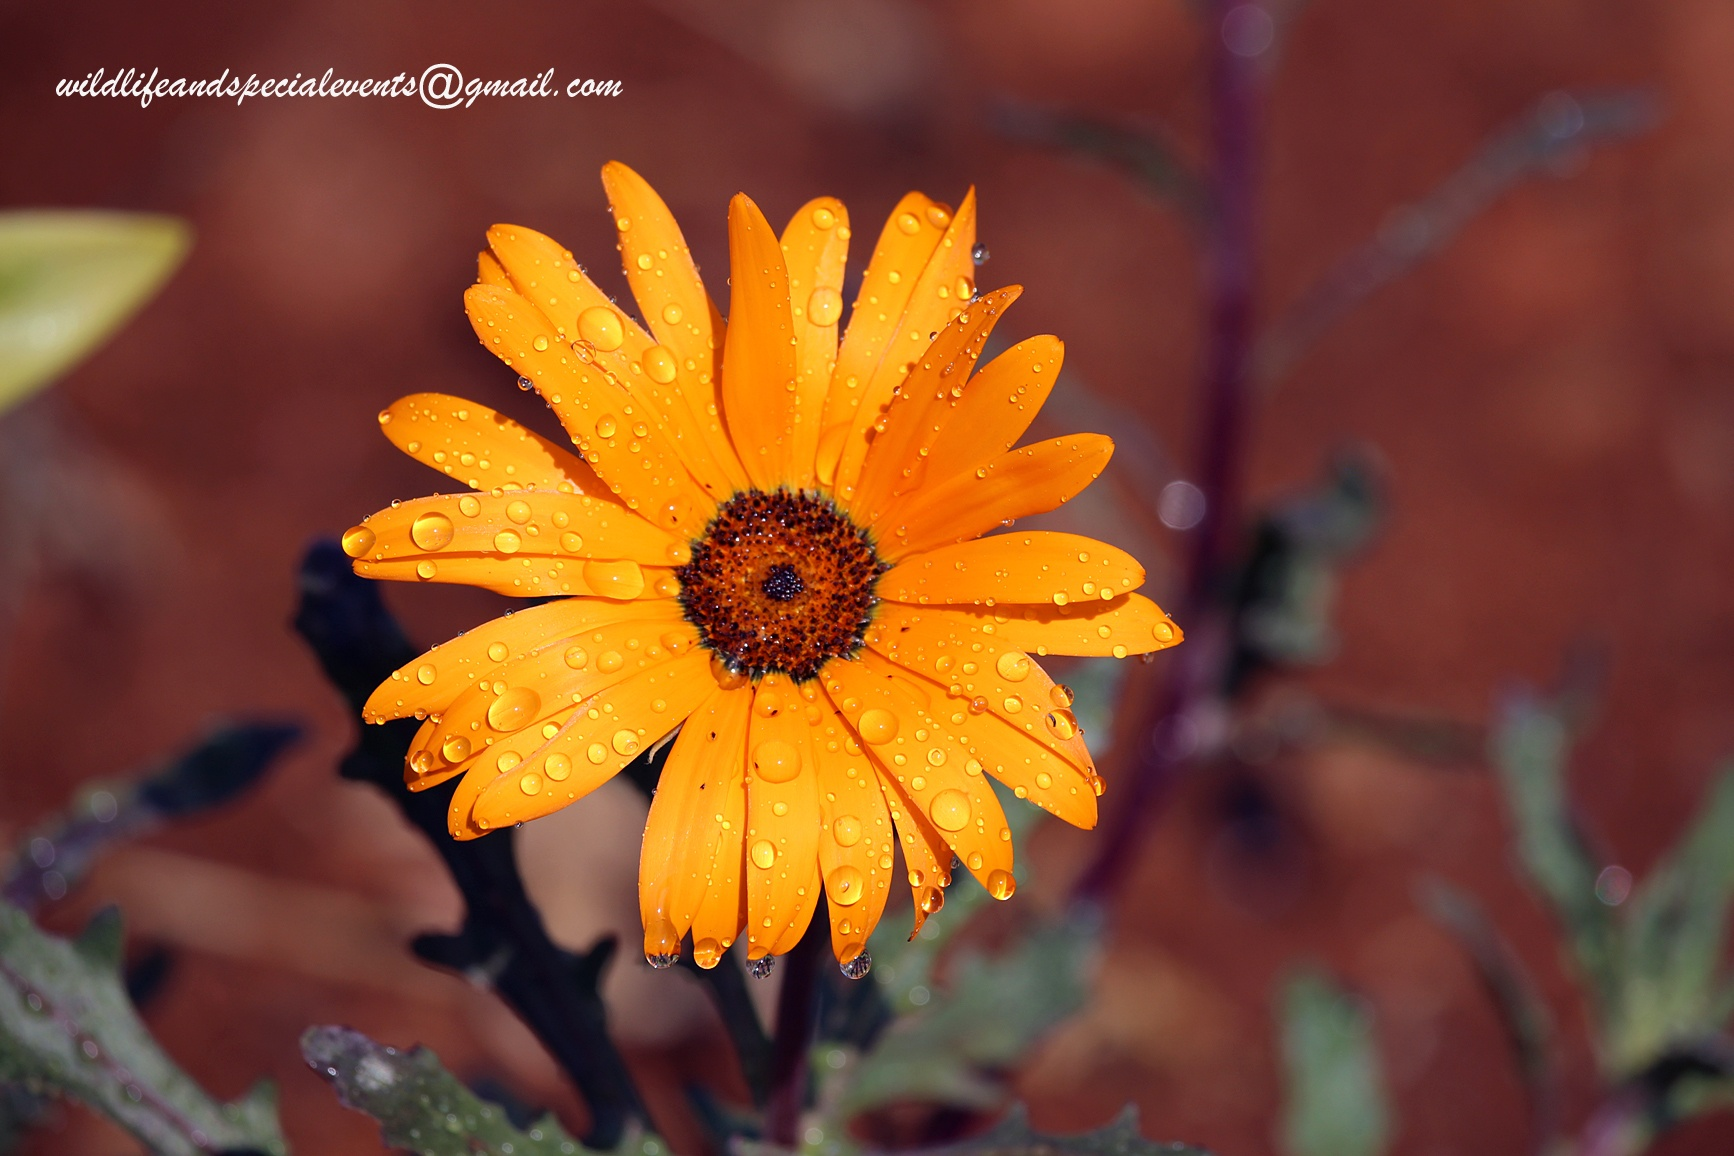 Flower with rain drops by oosie